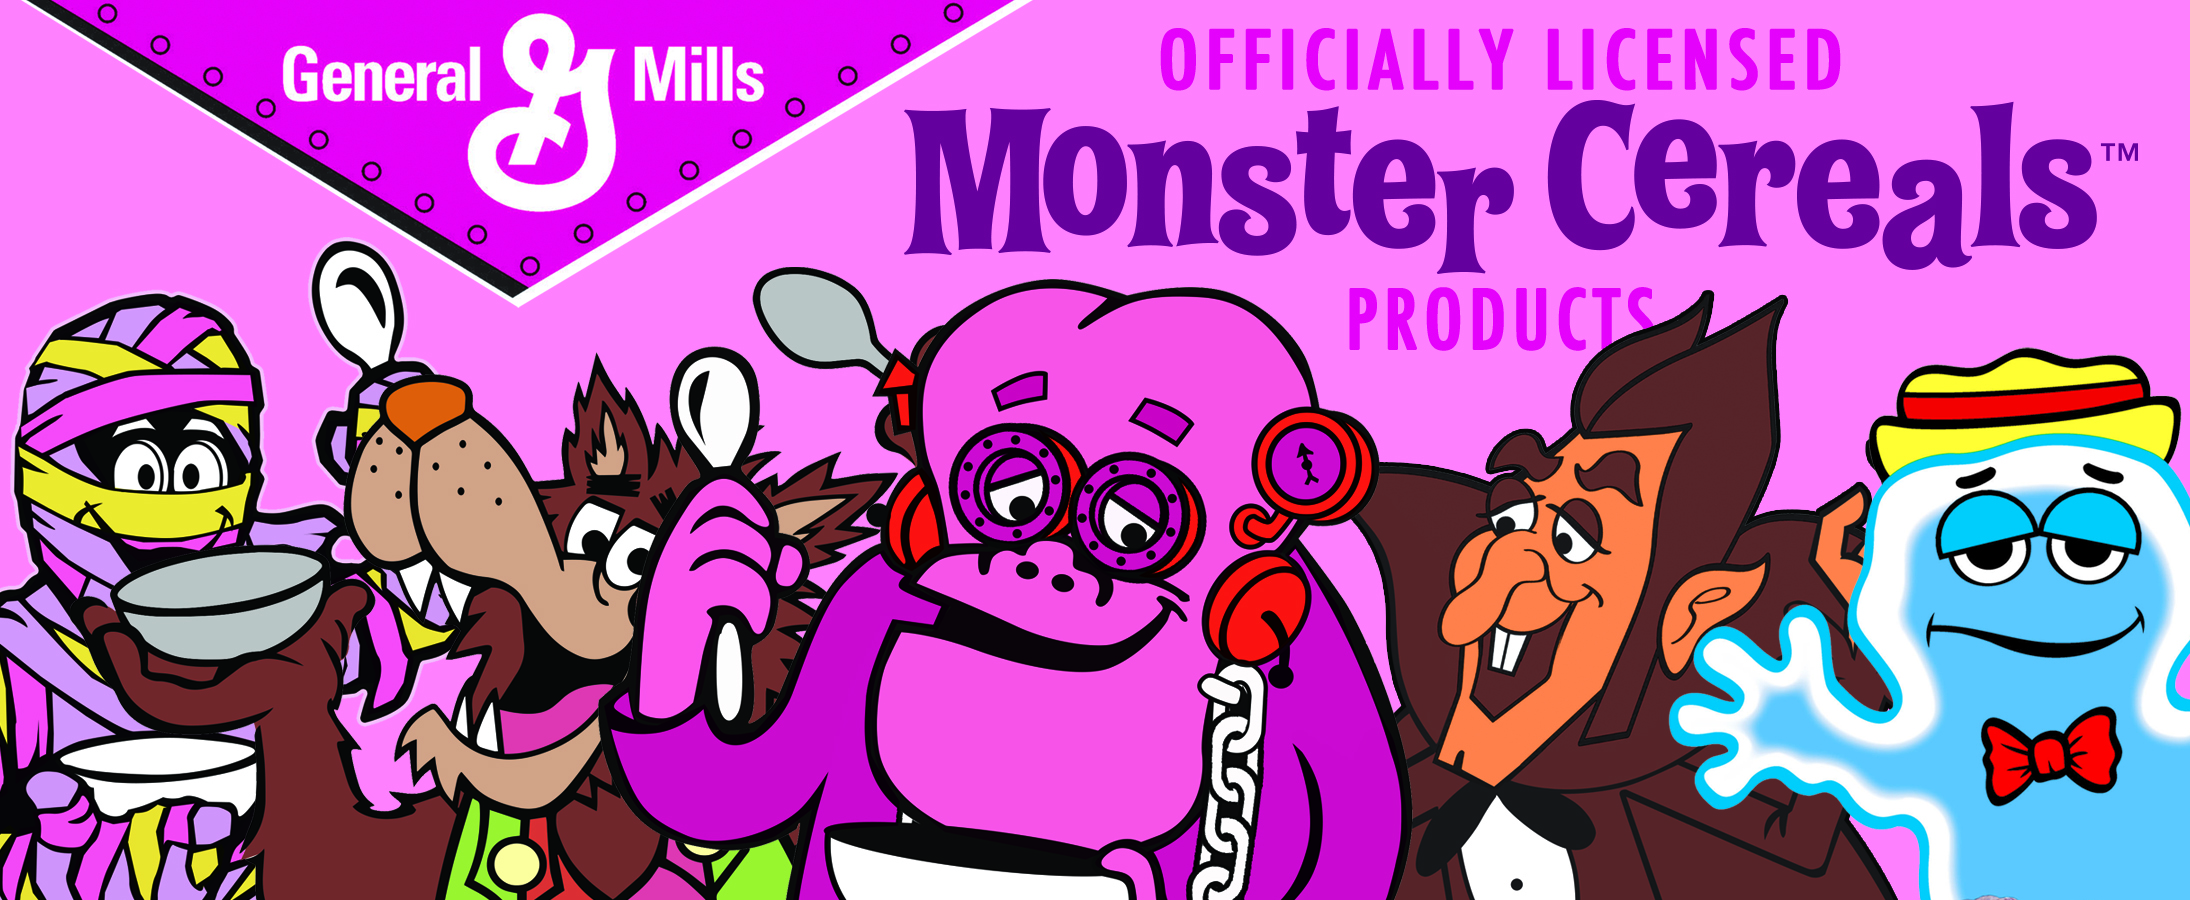 new-gm-cereal-monsters-header-8.2019.jpg